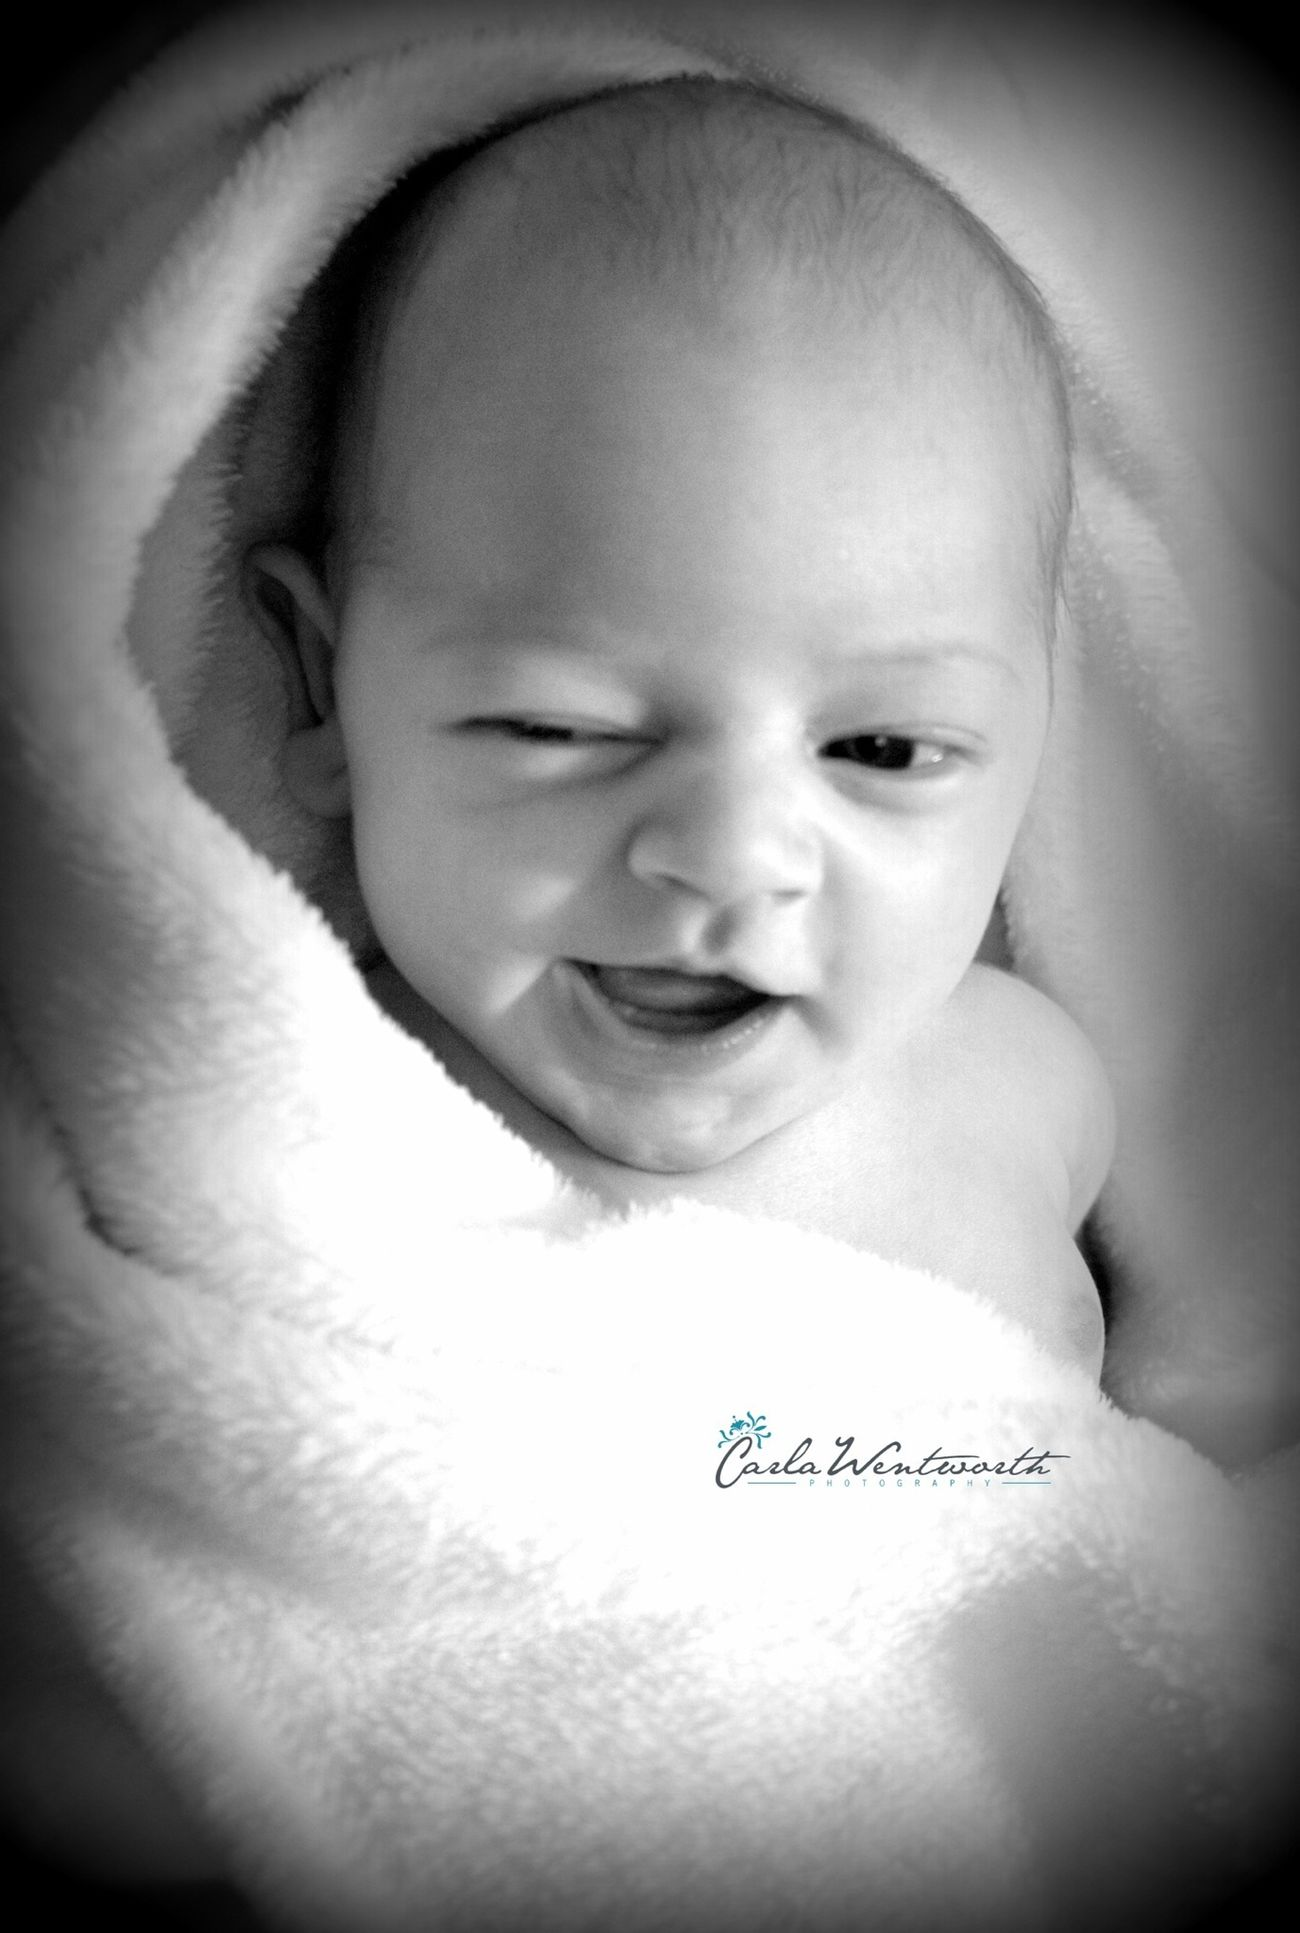 Cute Wink Baby Photography Carla Wentworth Photography